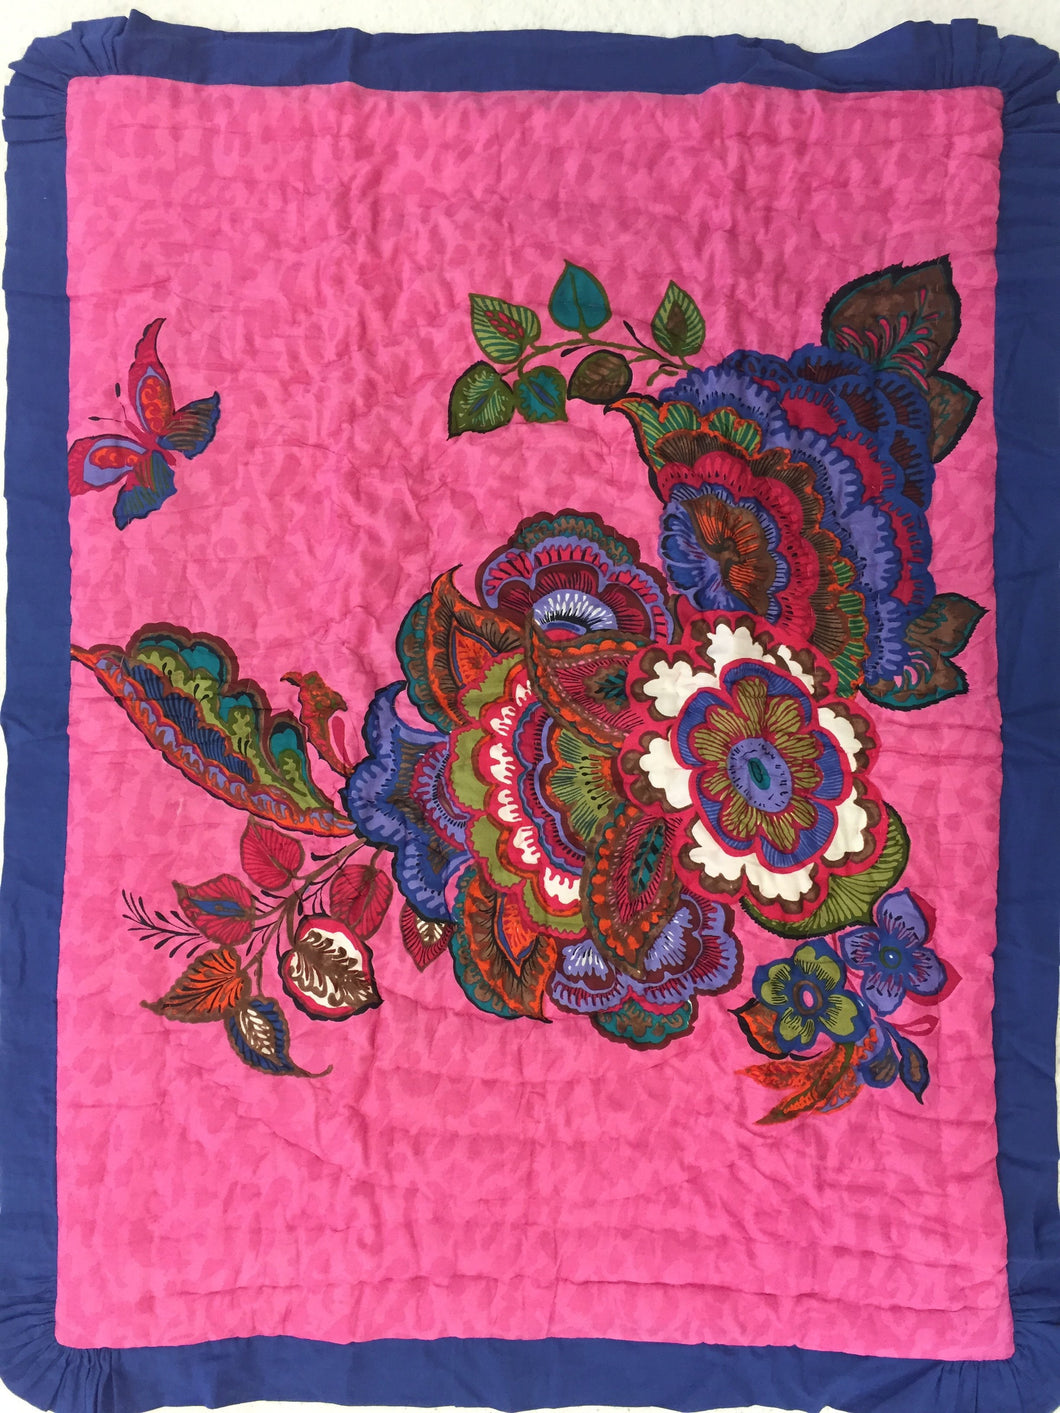 Fuchsia Floral and Butterfly Print Blanket with Blue Trim - Kids Wholesale Boutique Clothing, Blanket - Girls Dresses, Yo Baby Wholesale - Yo Baby